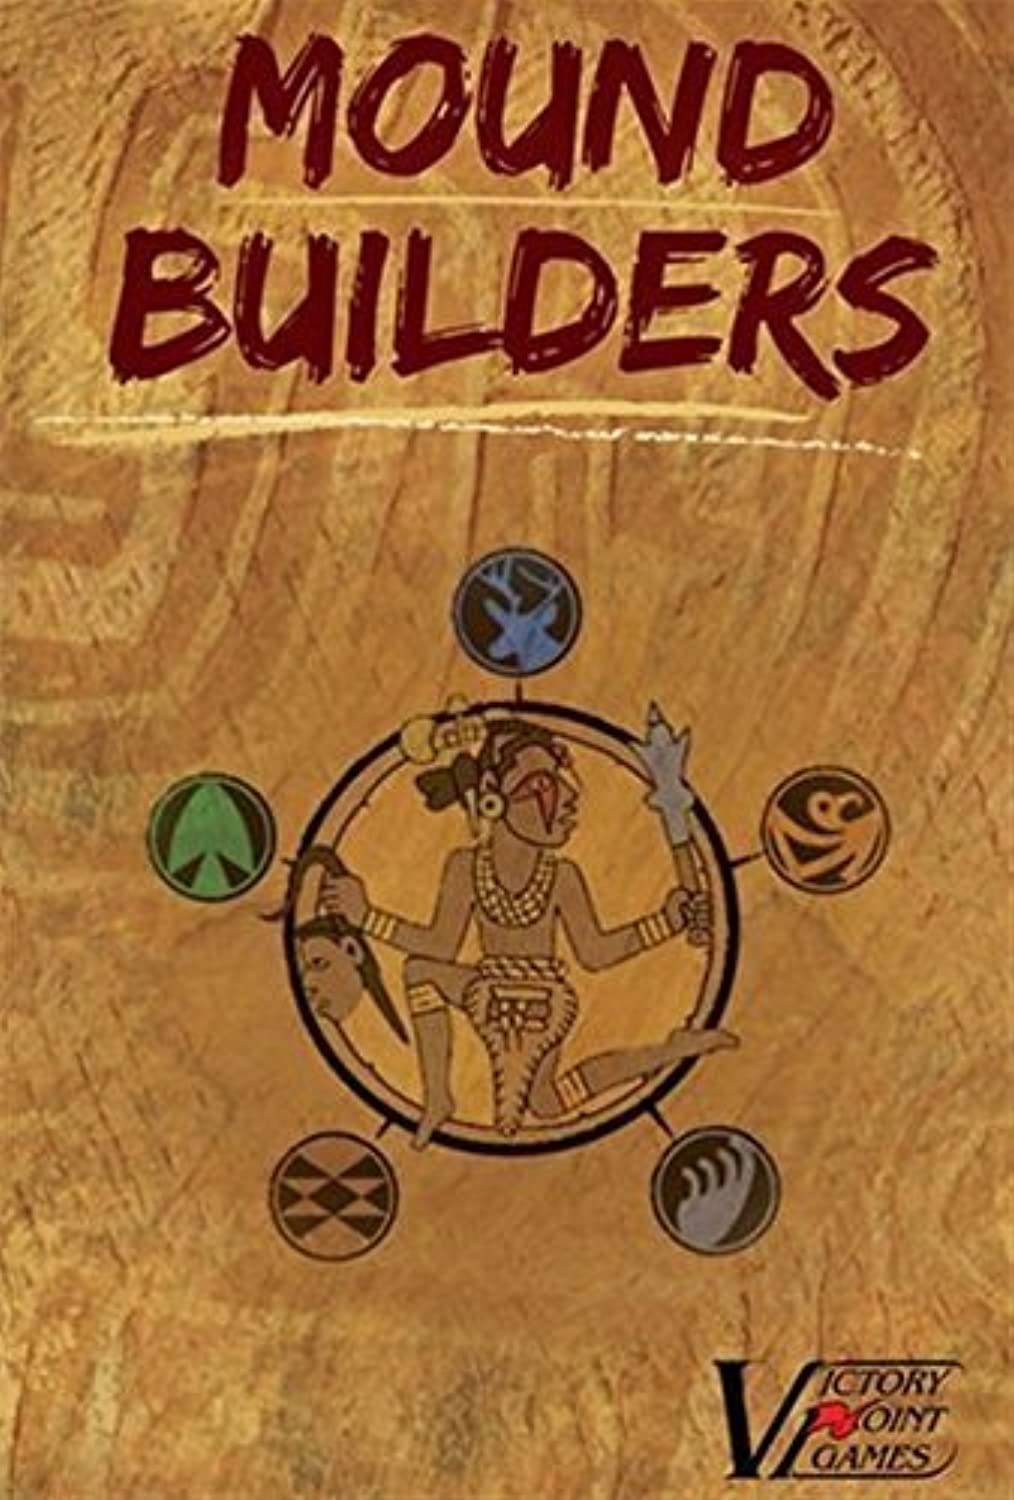 Mound Builders by Victory Games